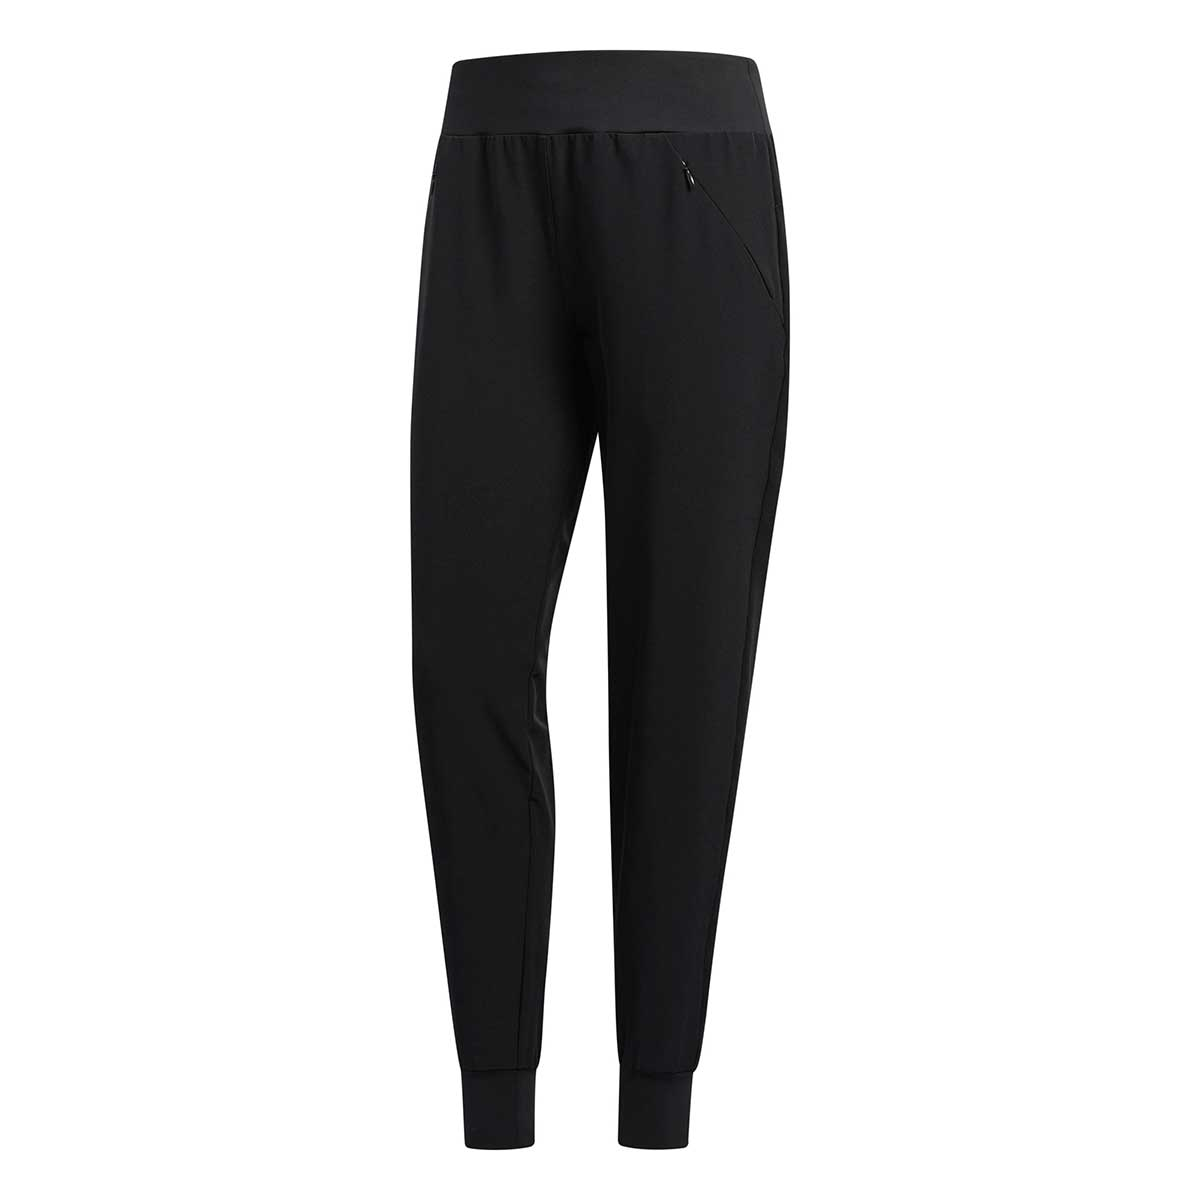 Adidas Women's Beyond 18 Black Pants